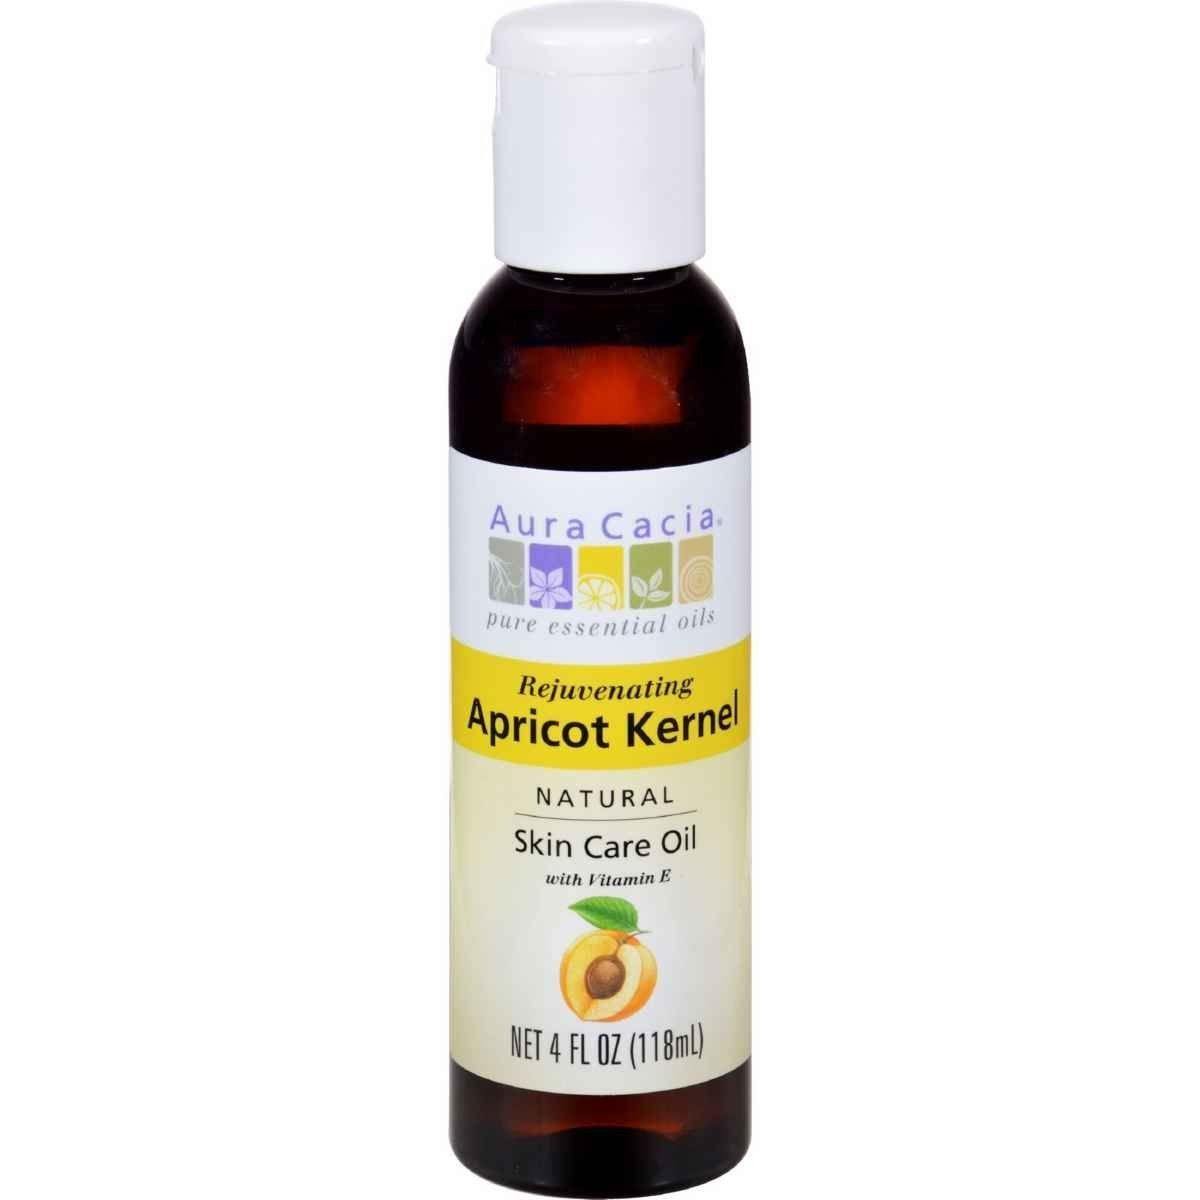 Rejuvenating Apricot Kernel Natural Skin Care Oil